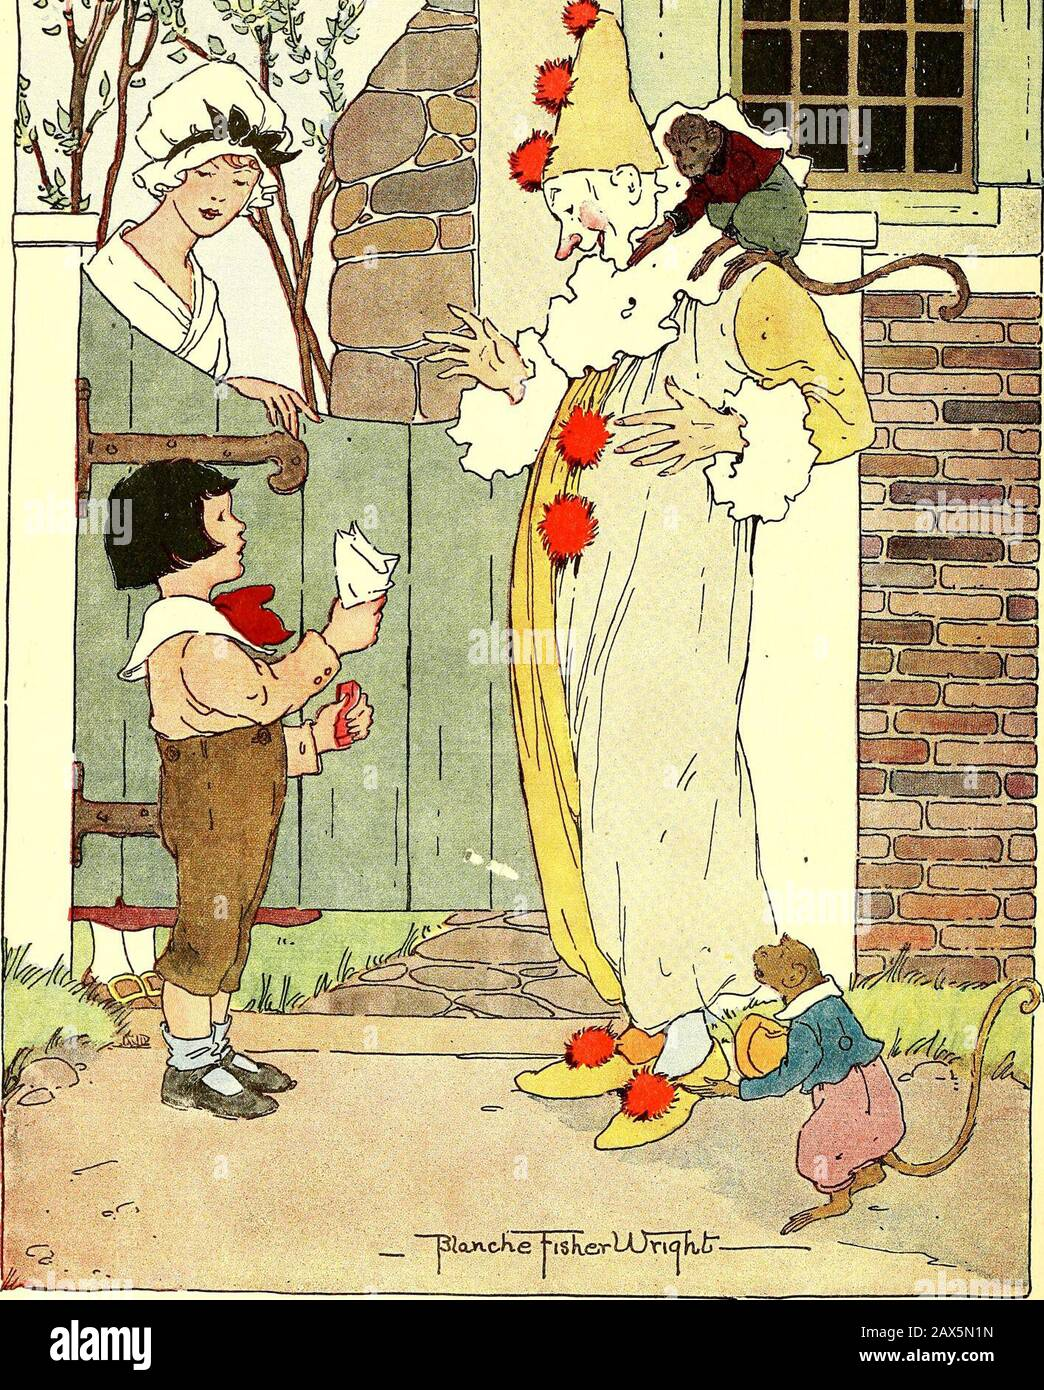 The Peter Patter book; rimes for children . gSSKSTT^ w. ILL TREAT THE CLOWN UP ON THE GARDENGATE Set me up on the garden gateAnd put on my Sunday tie;I want to be thereWith a round-eyed stareWhen the circus band goes by. Give me a bag of sucker- ettesAnd give me a piece of gum,Then I 11 get downAnd treat the clown,And give the monkey some. MOST ANY CHIP Most any chip Will do for a ship, If only the cargo be Golden sand From the beautiful land Of far-off Arcady. For faith will waft The tiny craft O er Fancys shining sea. Stock Photo